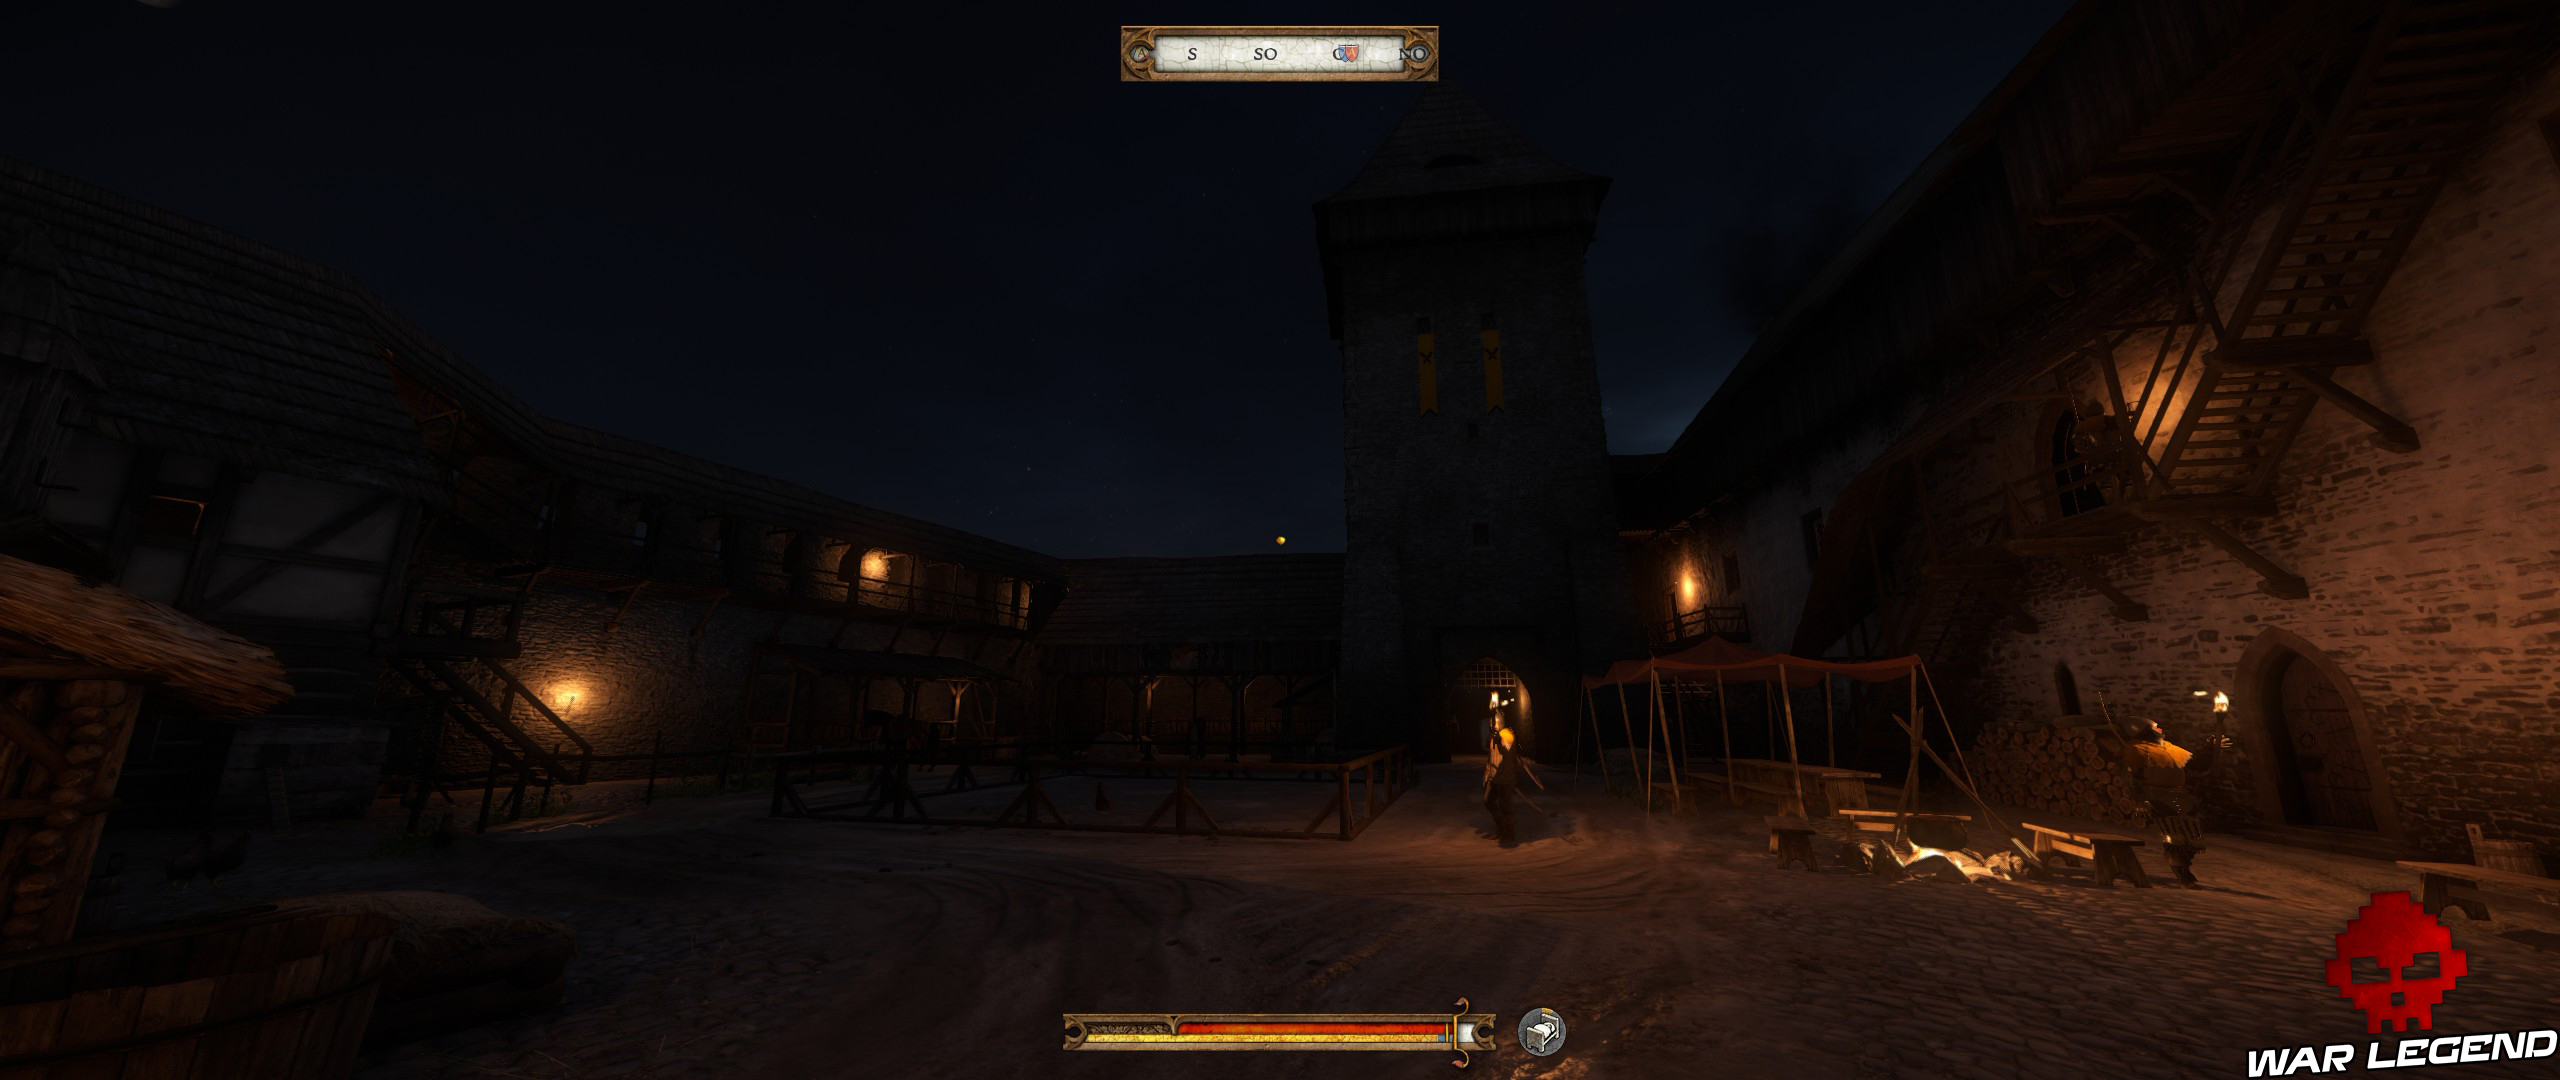 Kingdome come deliverance de nuit